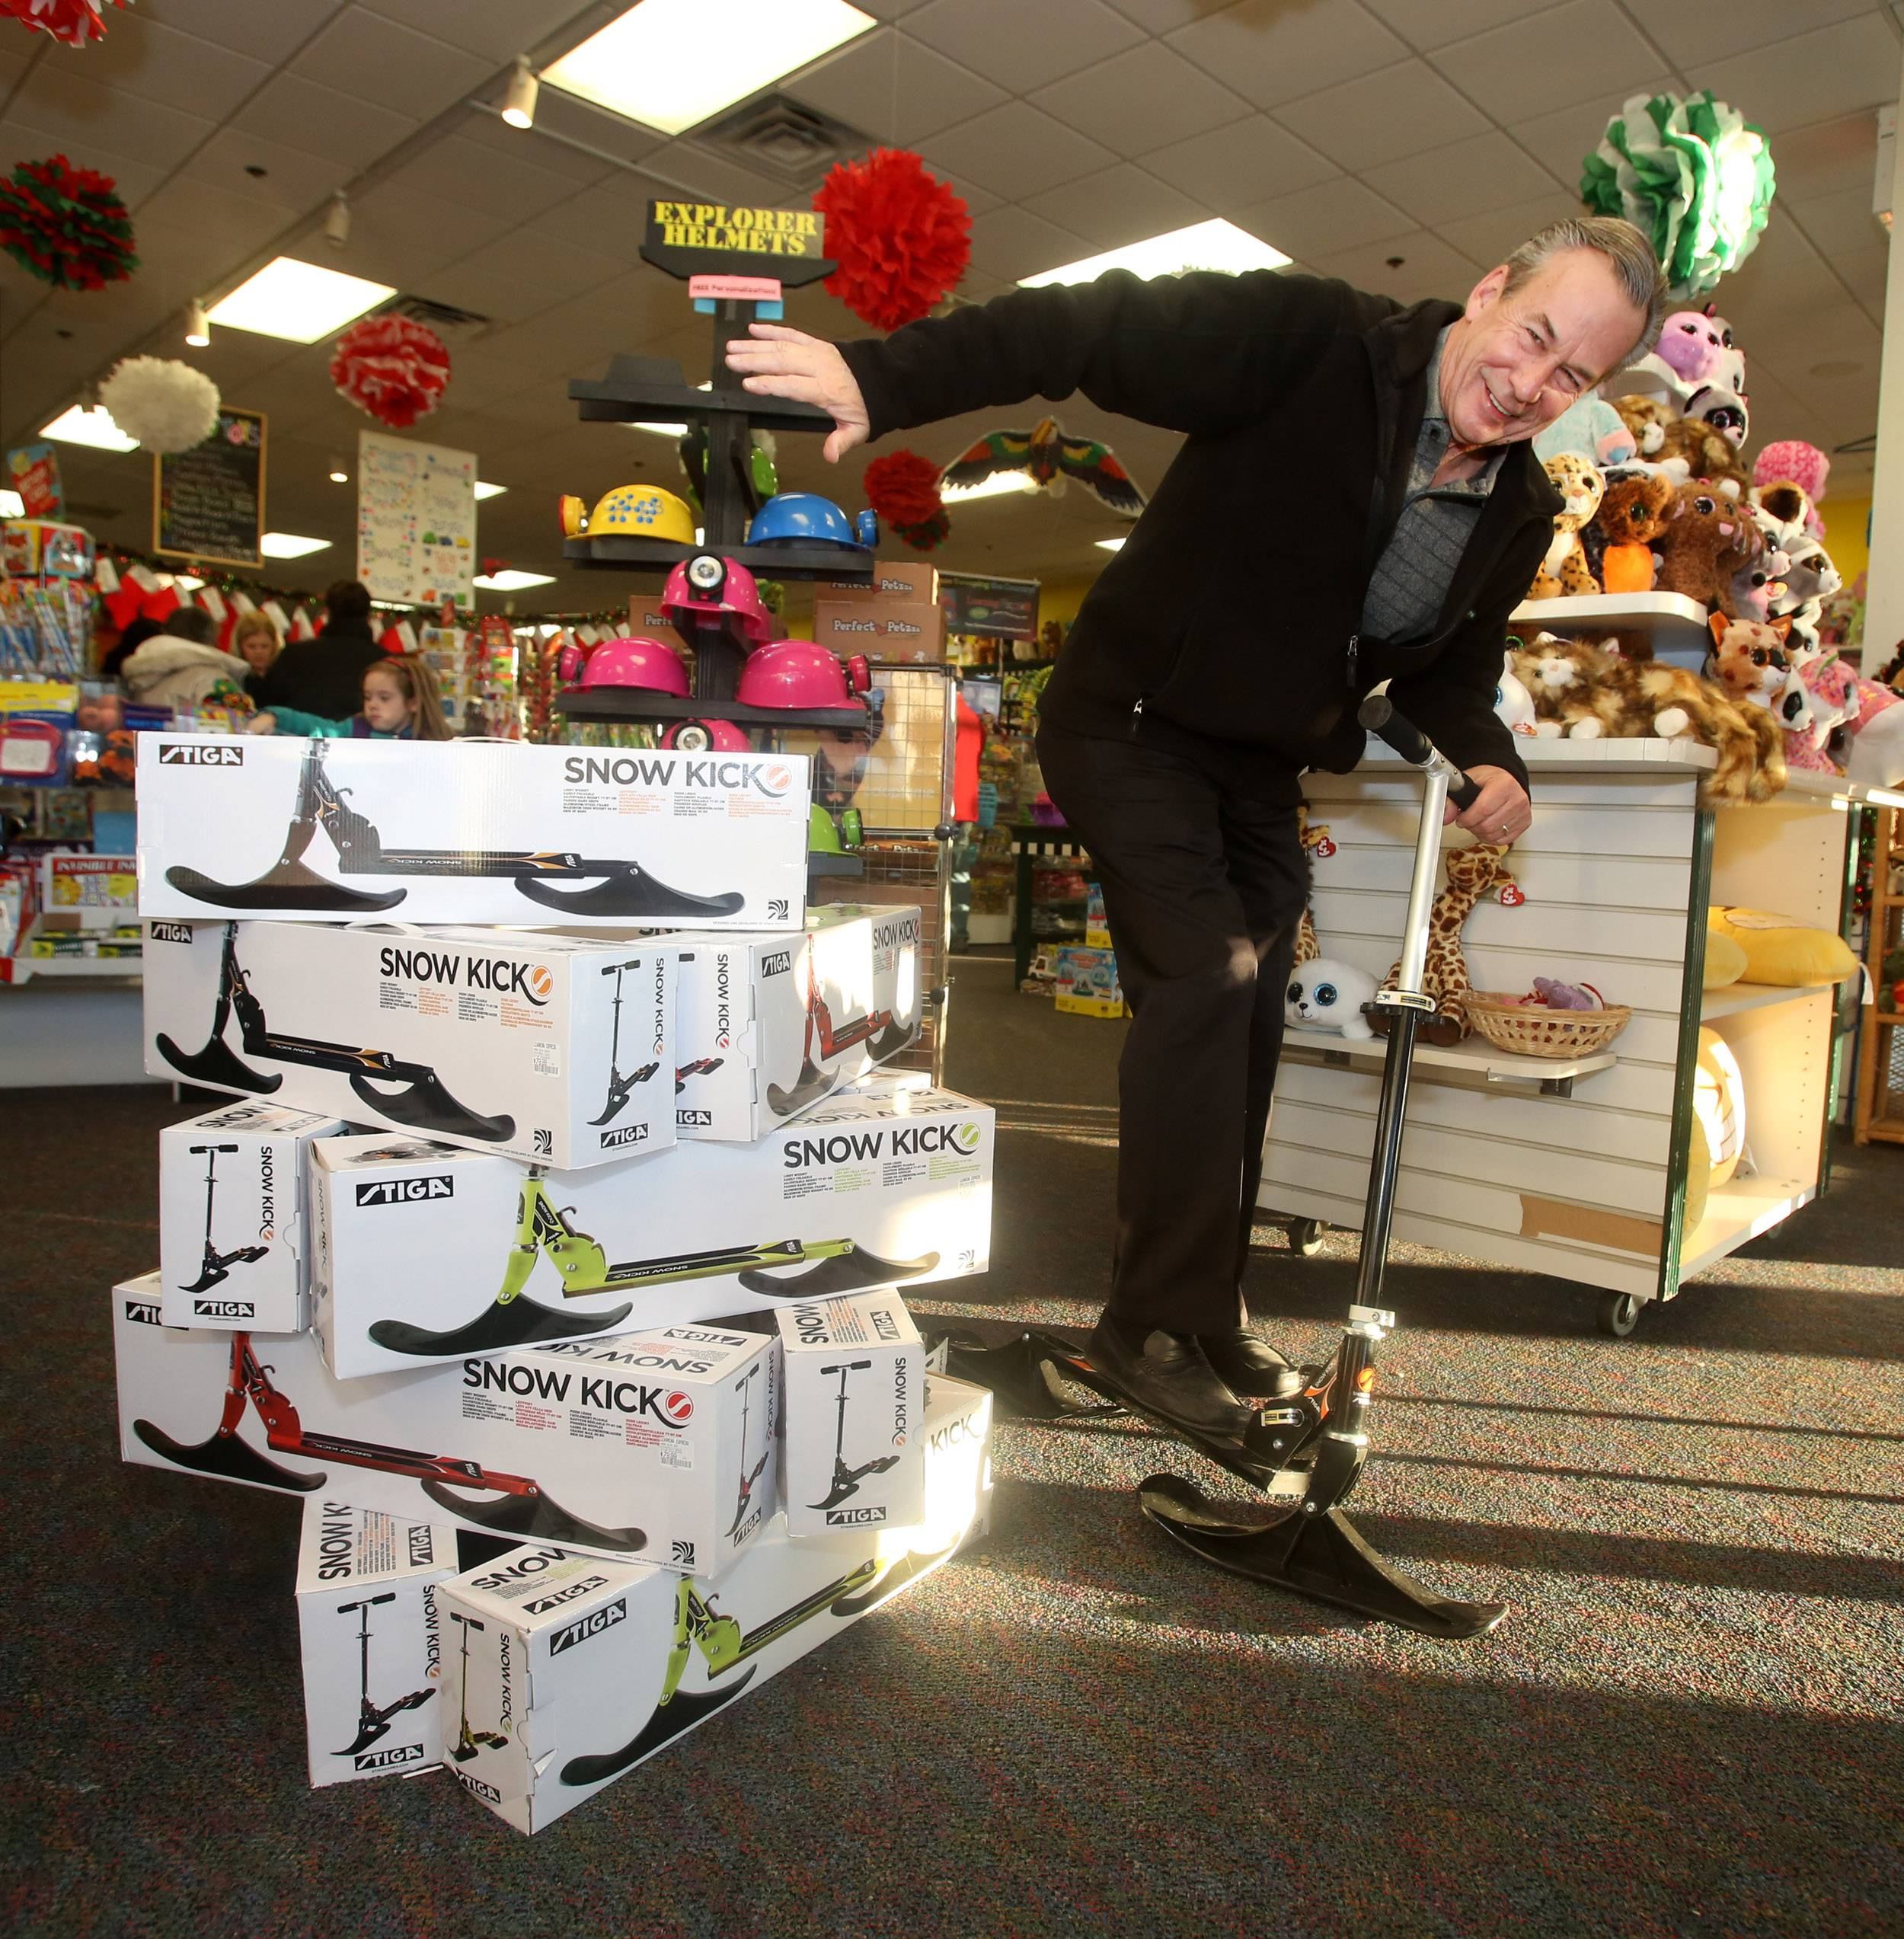 Learning Express store owner Steve Zdunek displays a Snow Kick scooter with skis, popular at his Naperville store.